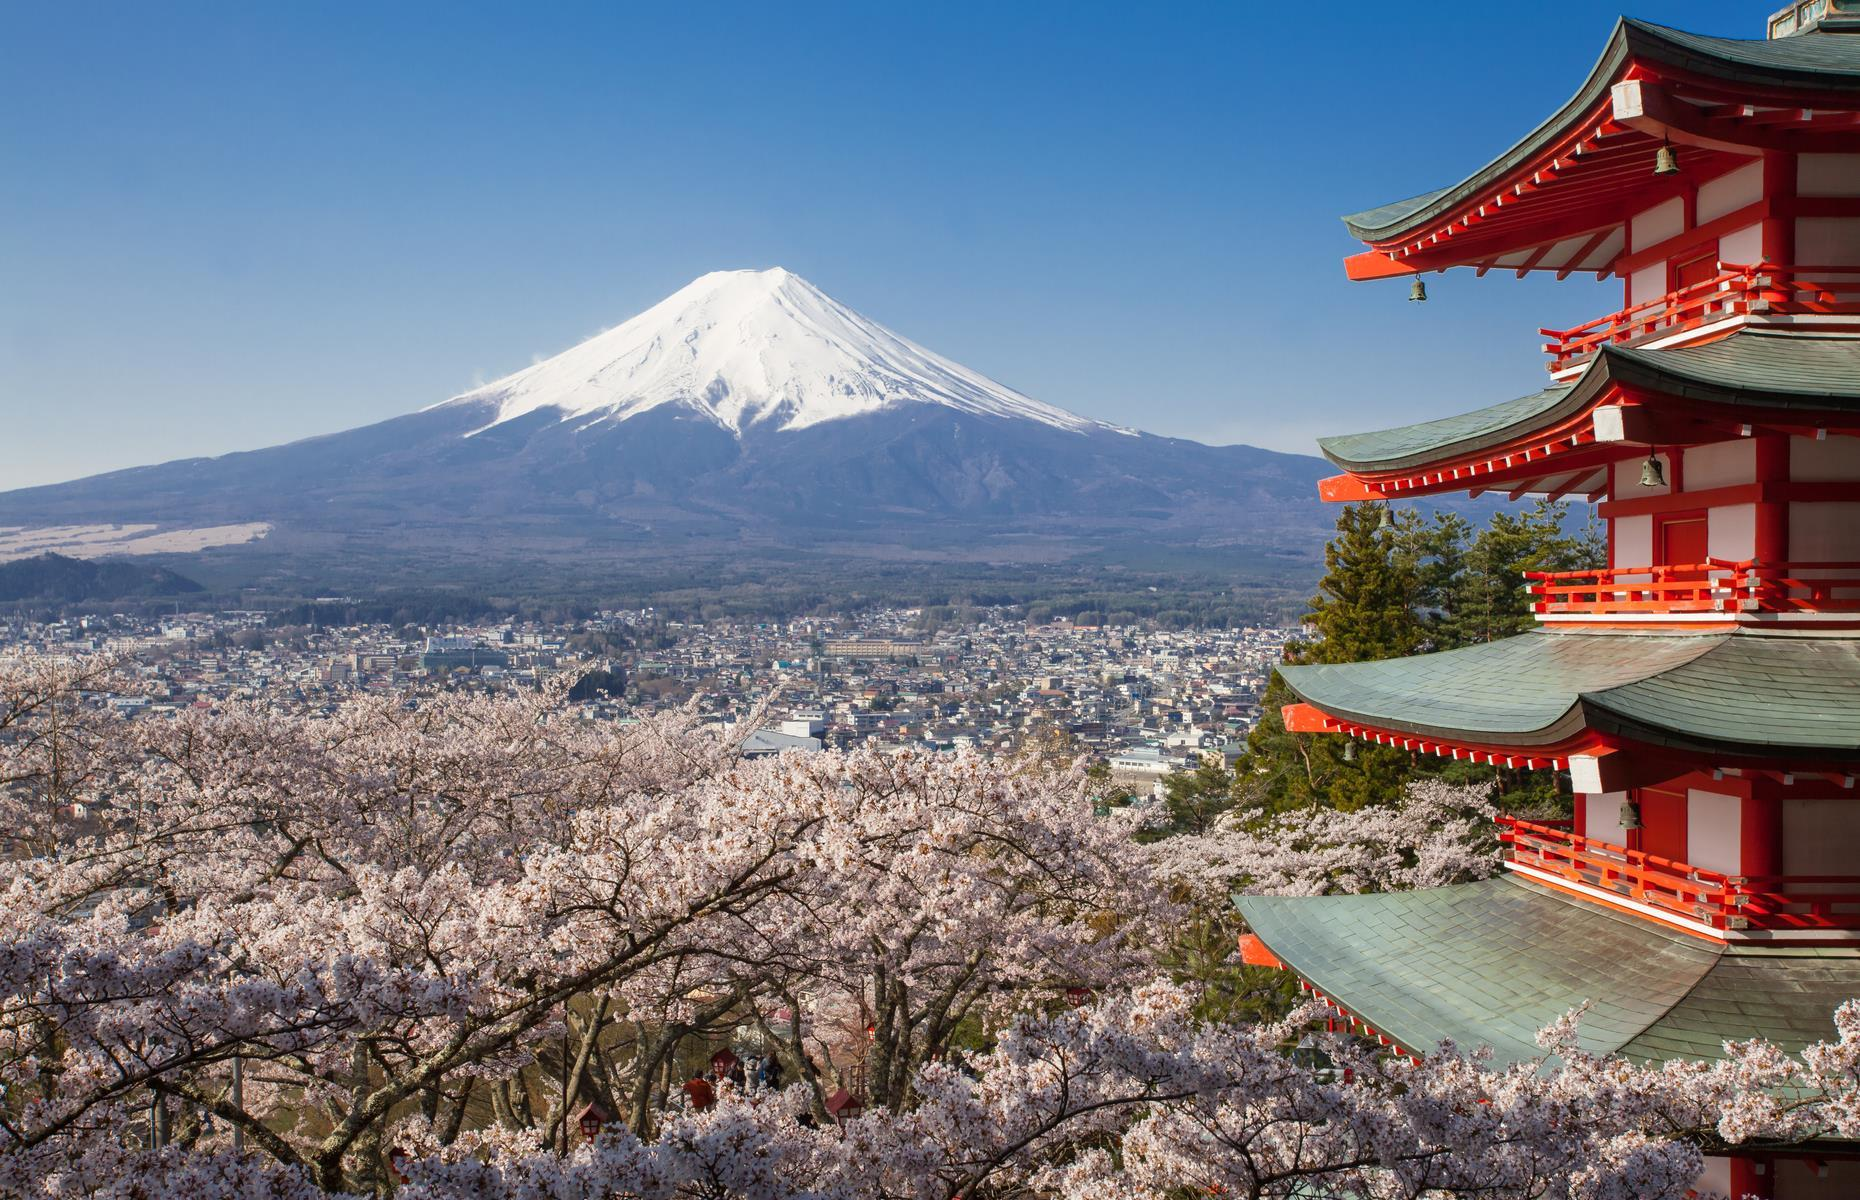 Slide 6 of 41: Around 60 miles (100km) from Tokyo, Mount Fuji is Japan's most iconic peak and some would say that the snow-capped view is best appreciated from afar. Fuji-san, as it's known locally, is long overdue an eruption as the last time it happened was 1707.